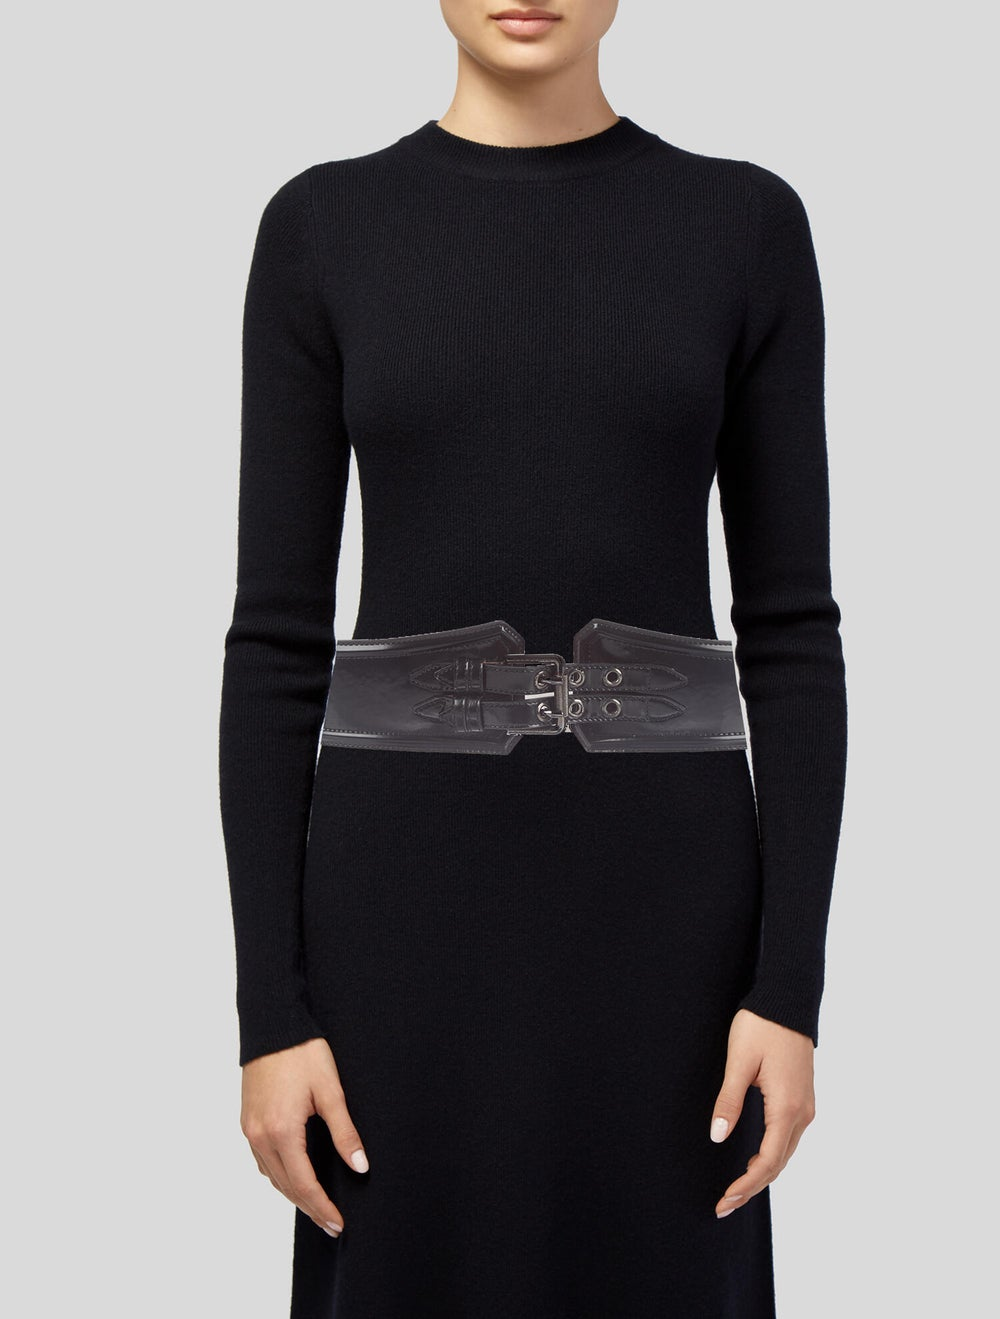 Burberry Leather Buckle Belt Black - image 2